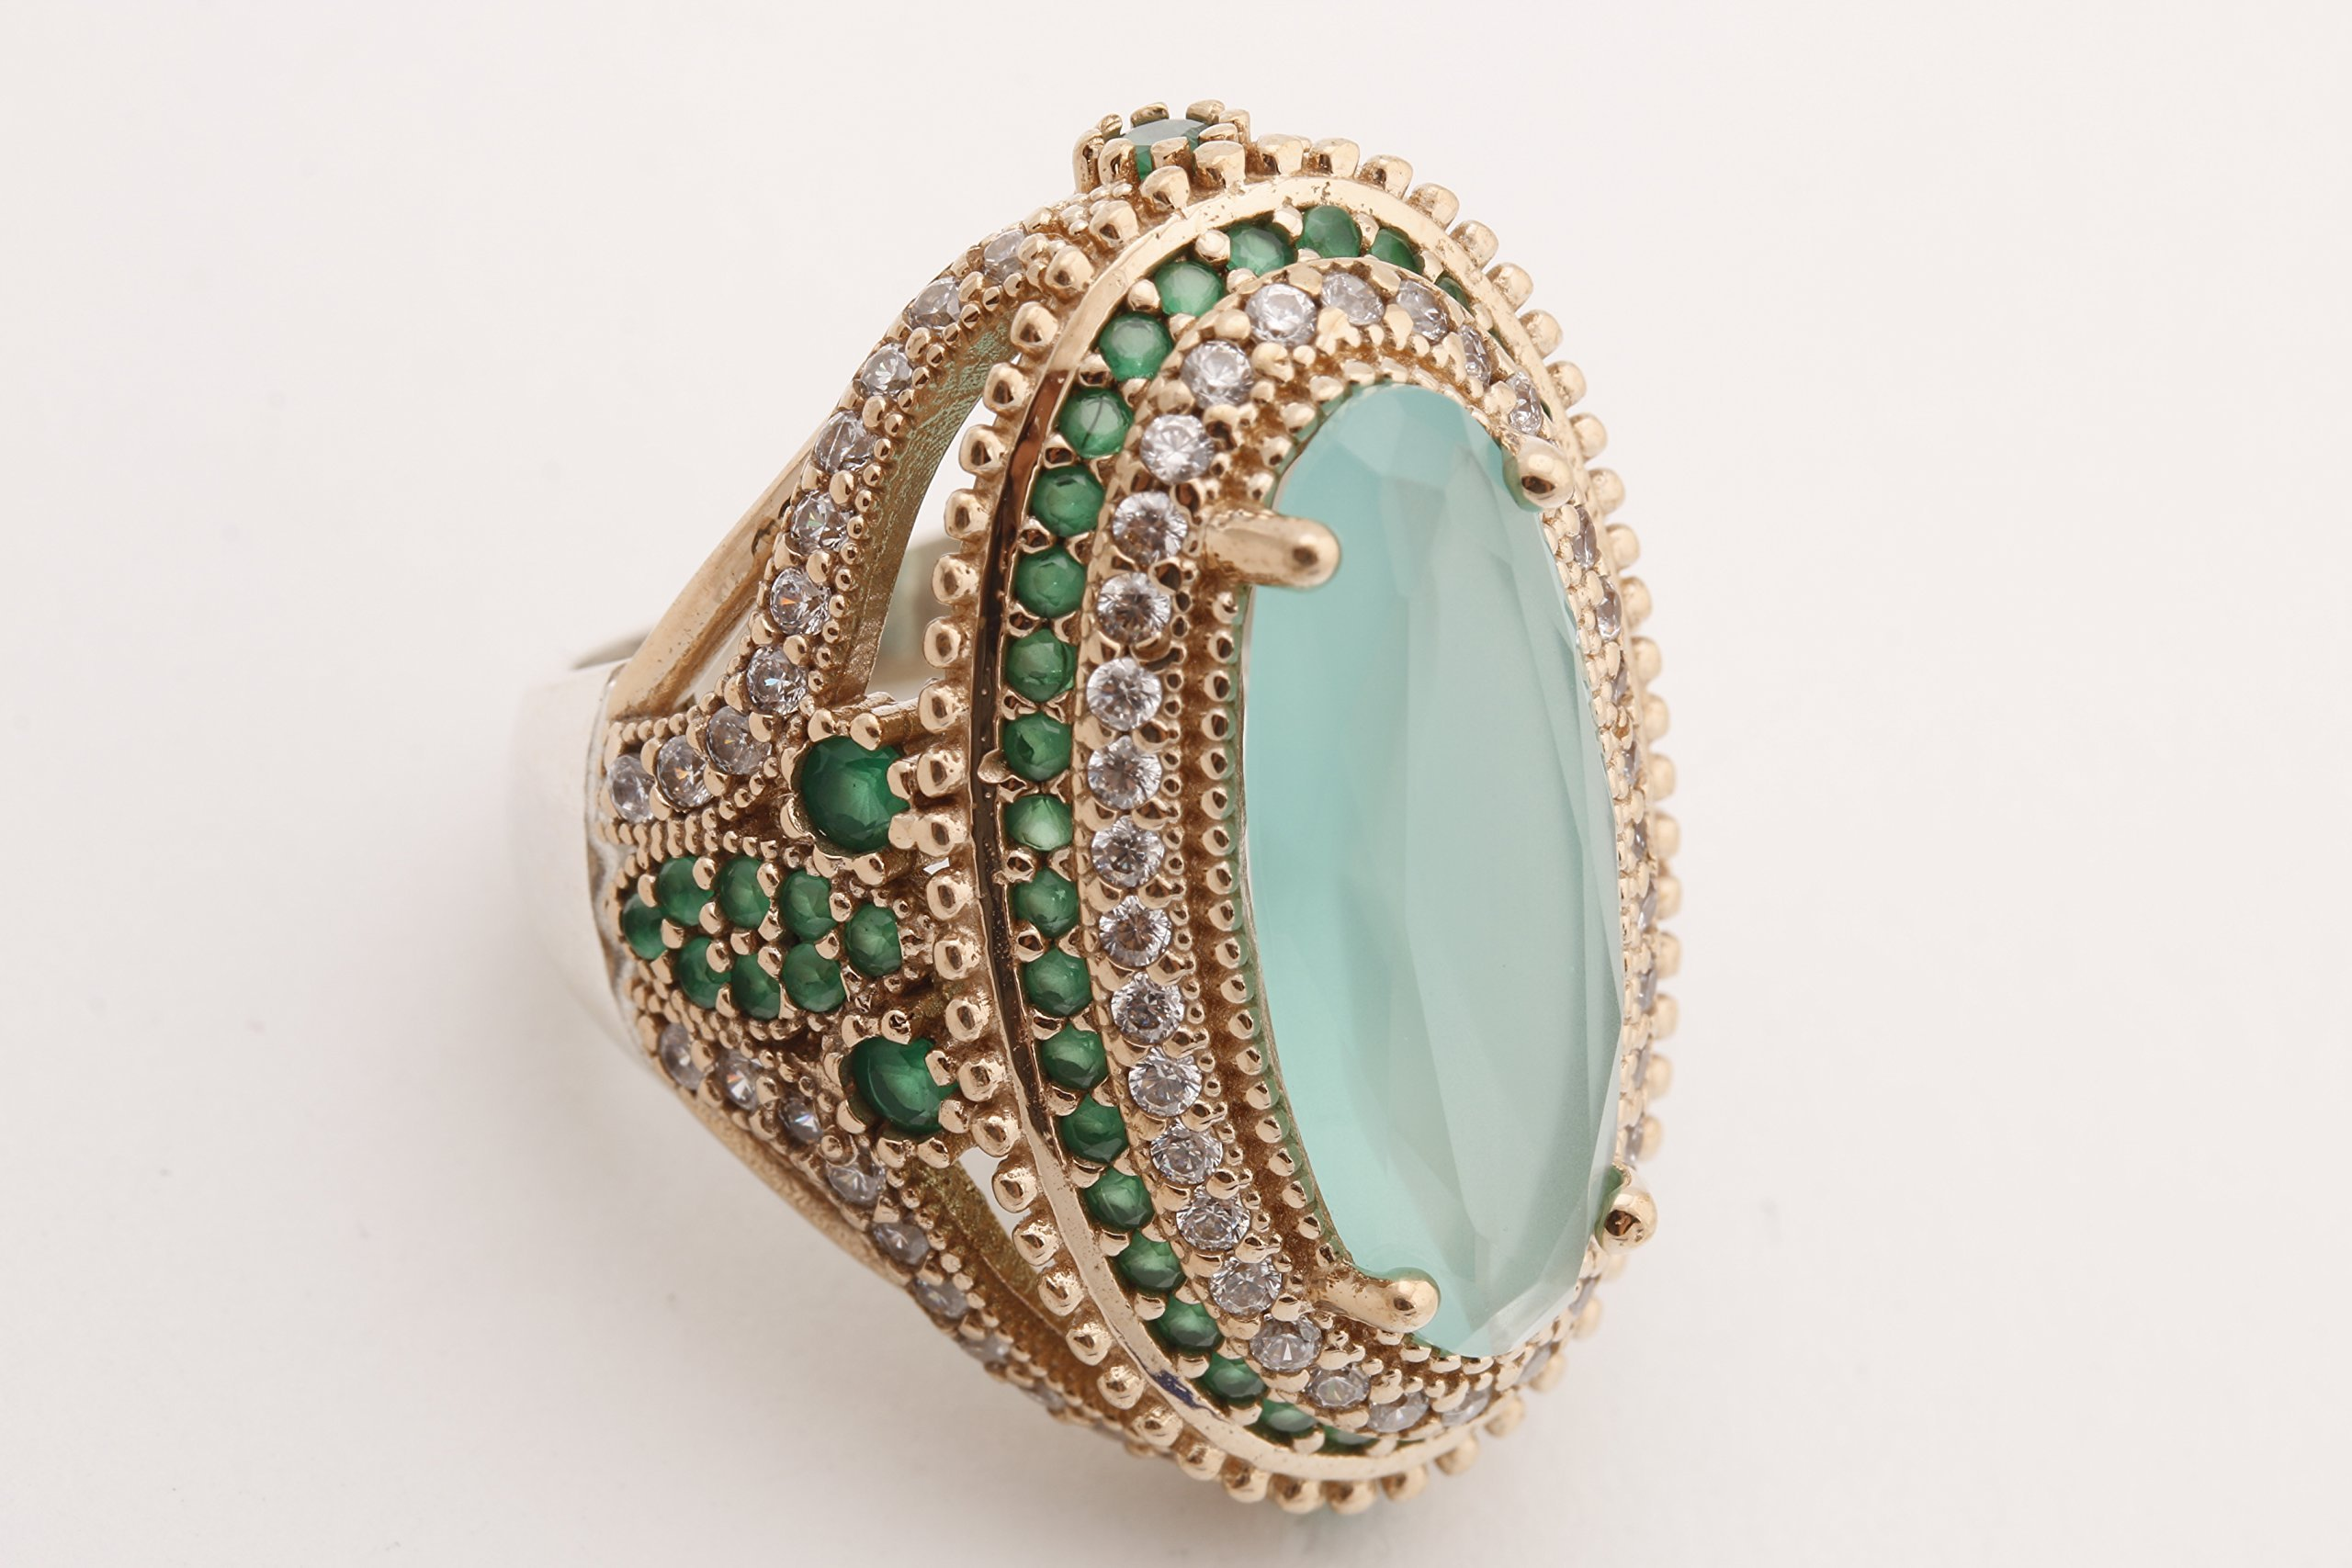 Turkish Handmade Jewelry Long Oval Shape Aquamarine and Round Cut Emerald Topaz 925 Sterling Silver Ring Size All